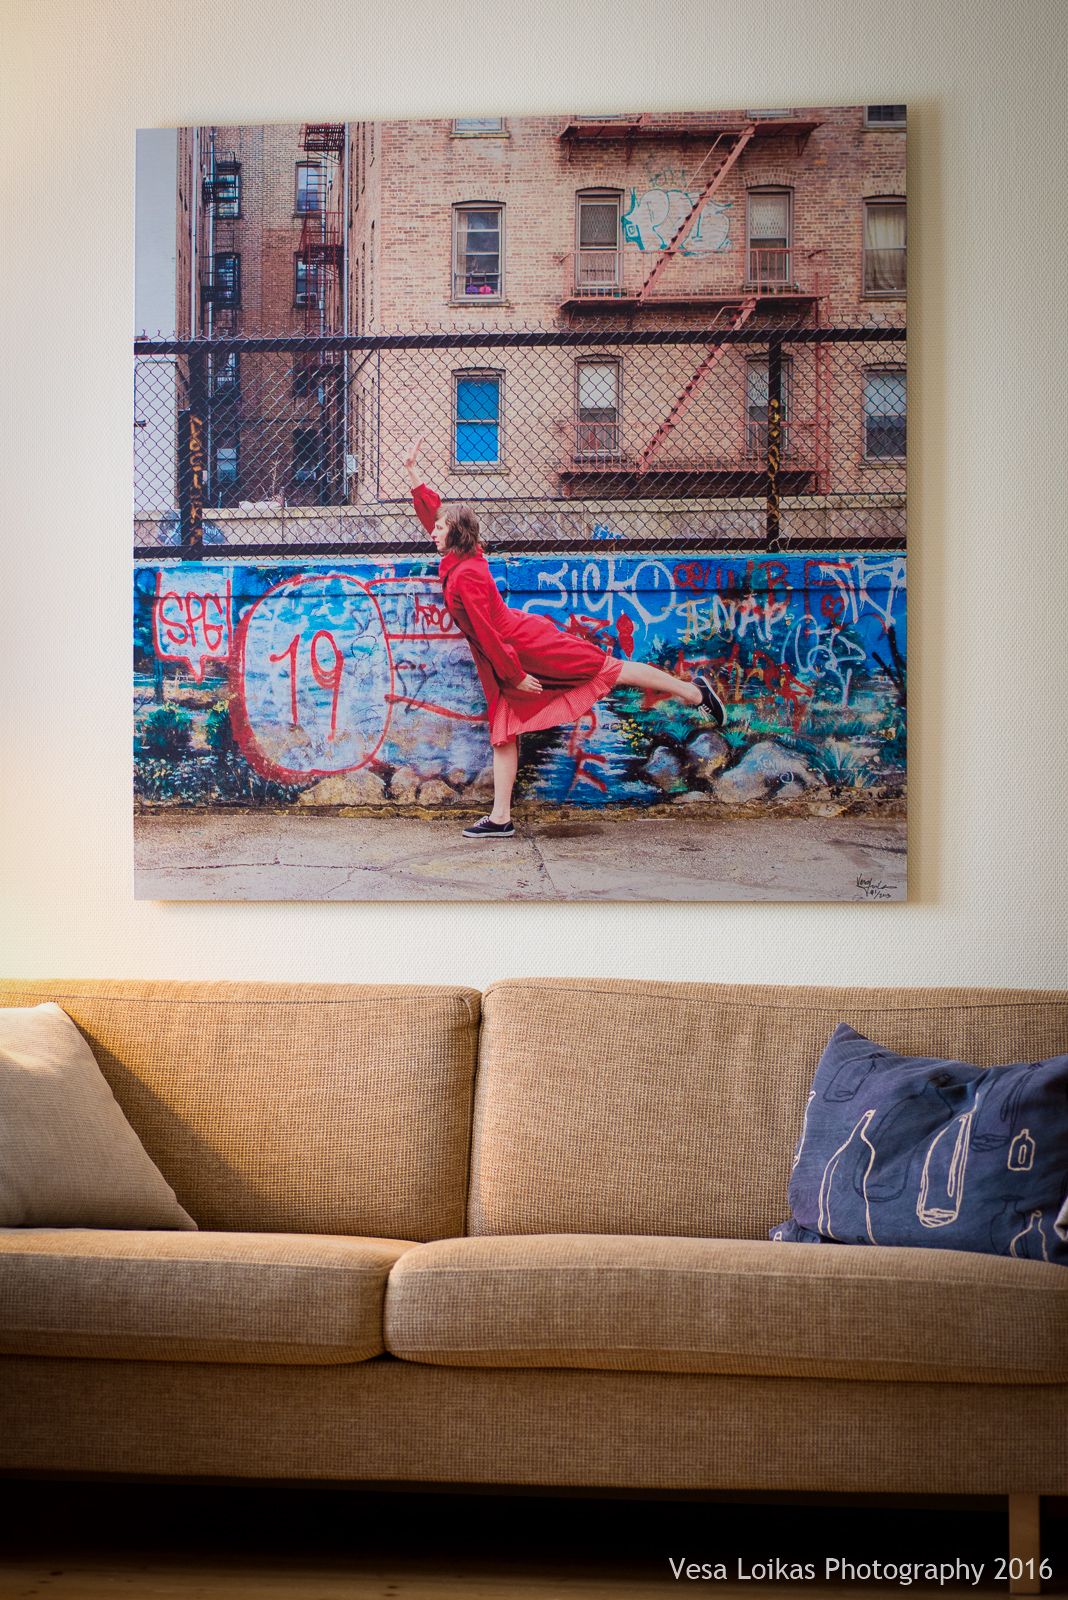 The End Act III - dancer Xan Burley, Brooklyn, new York City - Large 120 x 120 cm brushed aluminum piece on a living room wall.